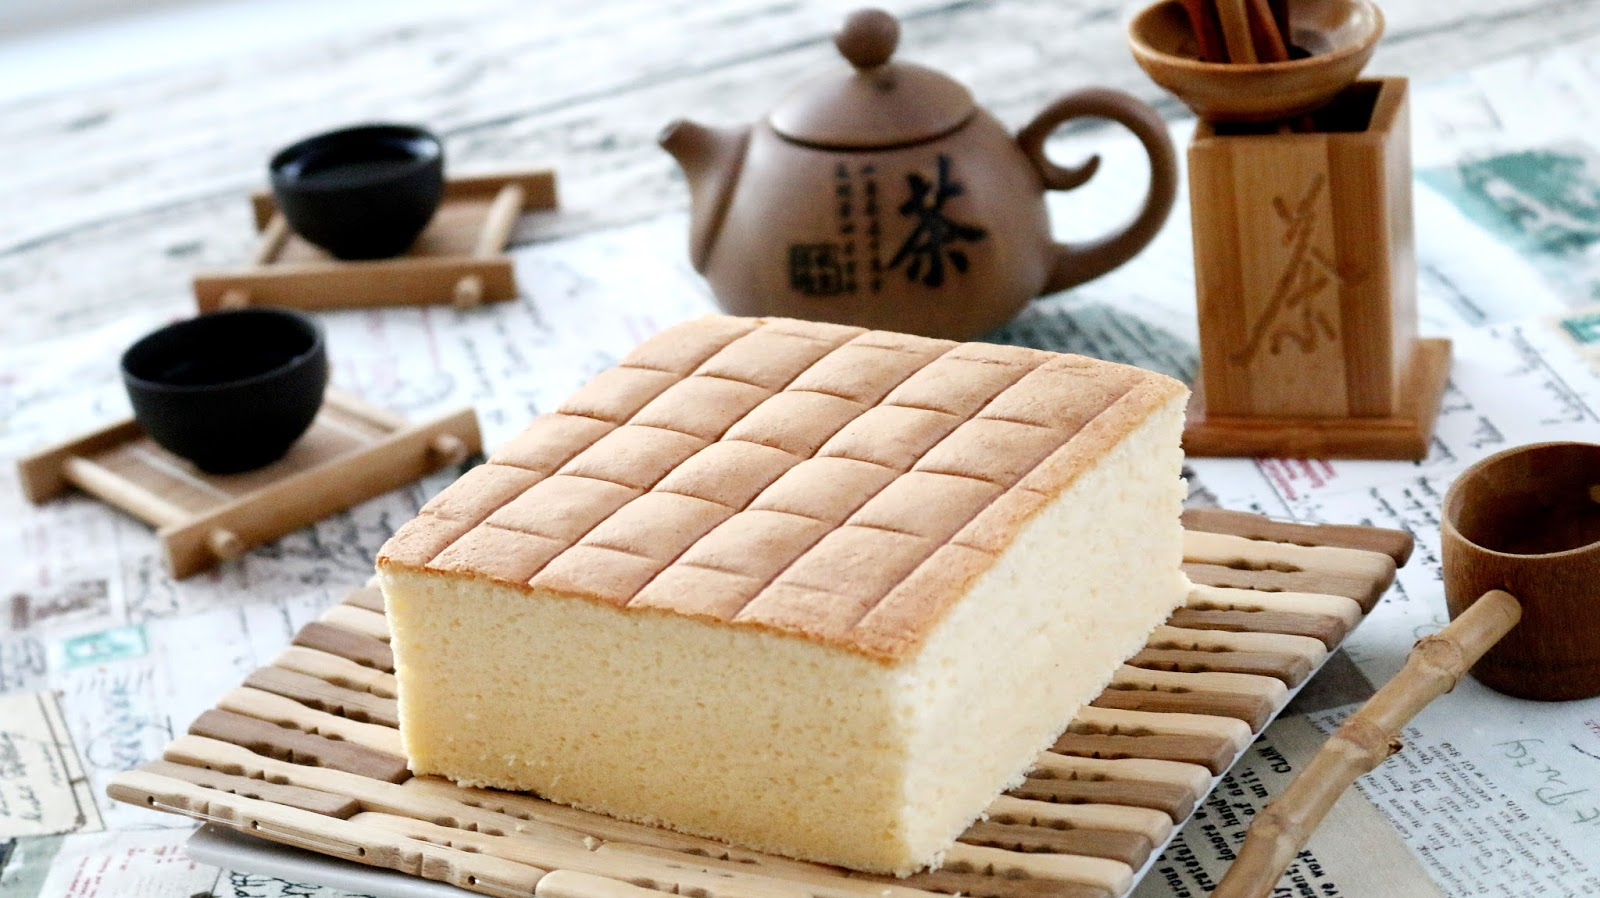 Japanese Sponge Cake Recipe Youtube: Josephine's Recipes : How To Make Cotton Soft Sponge Cake